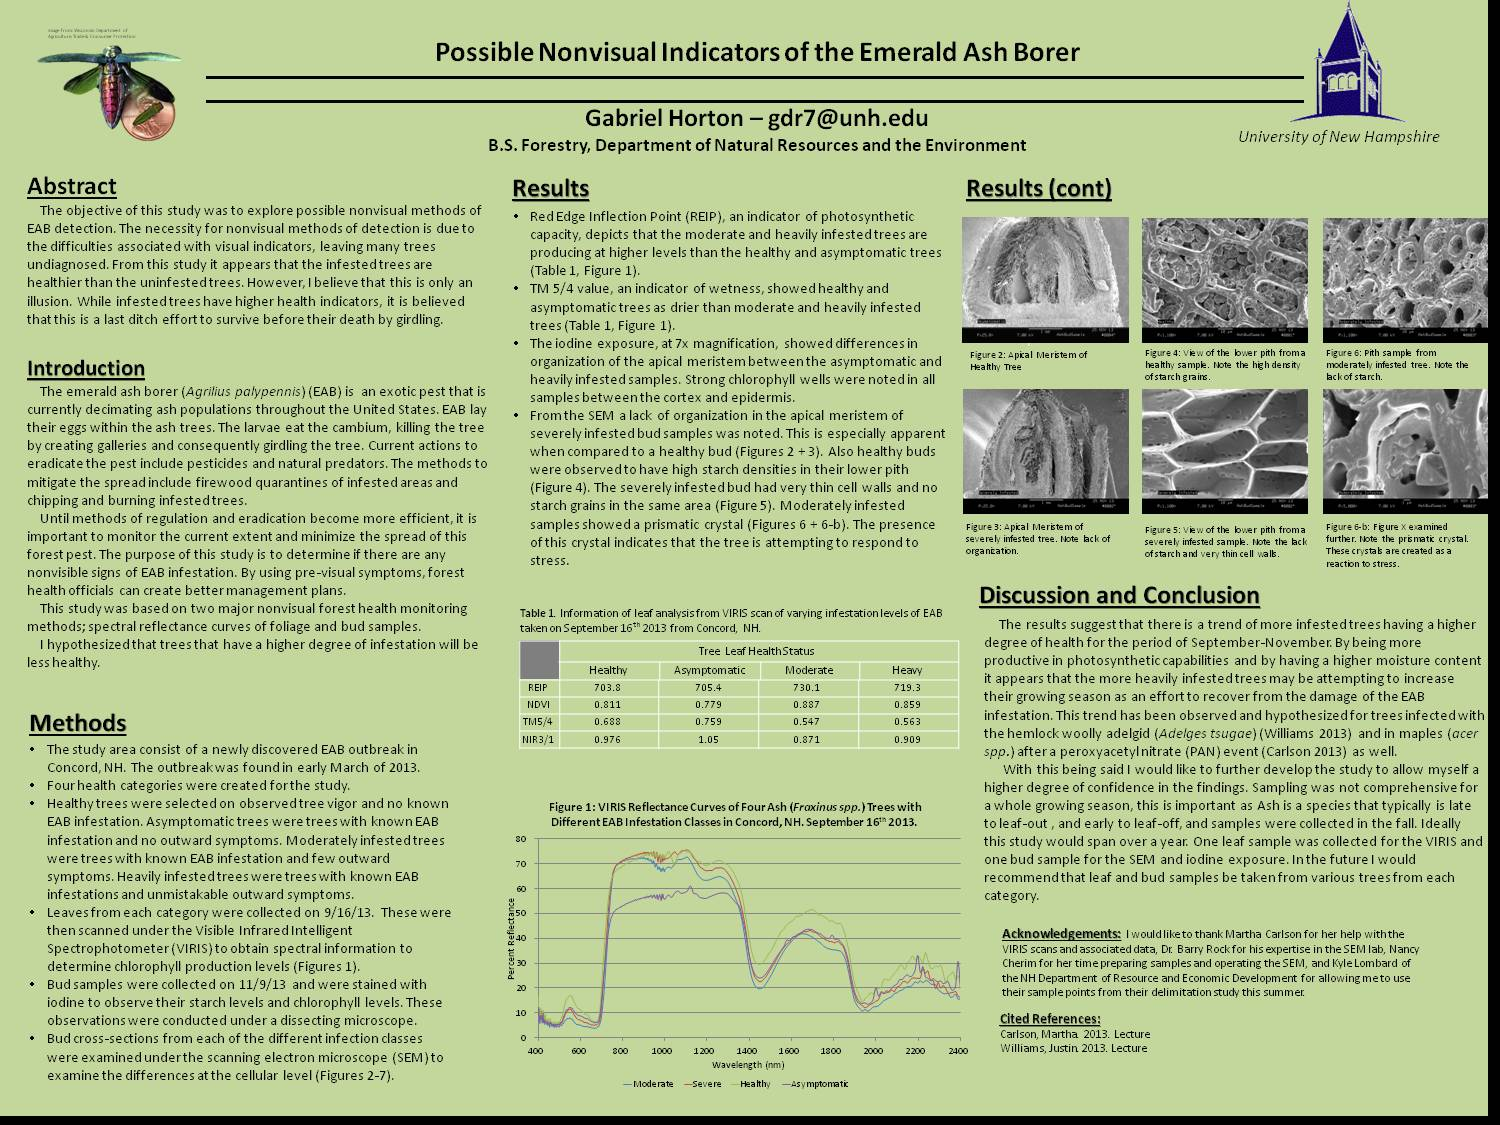 Possible Nonvisual Indicators Of The Emerald Ash Borer by gdr7